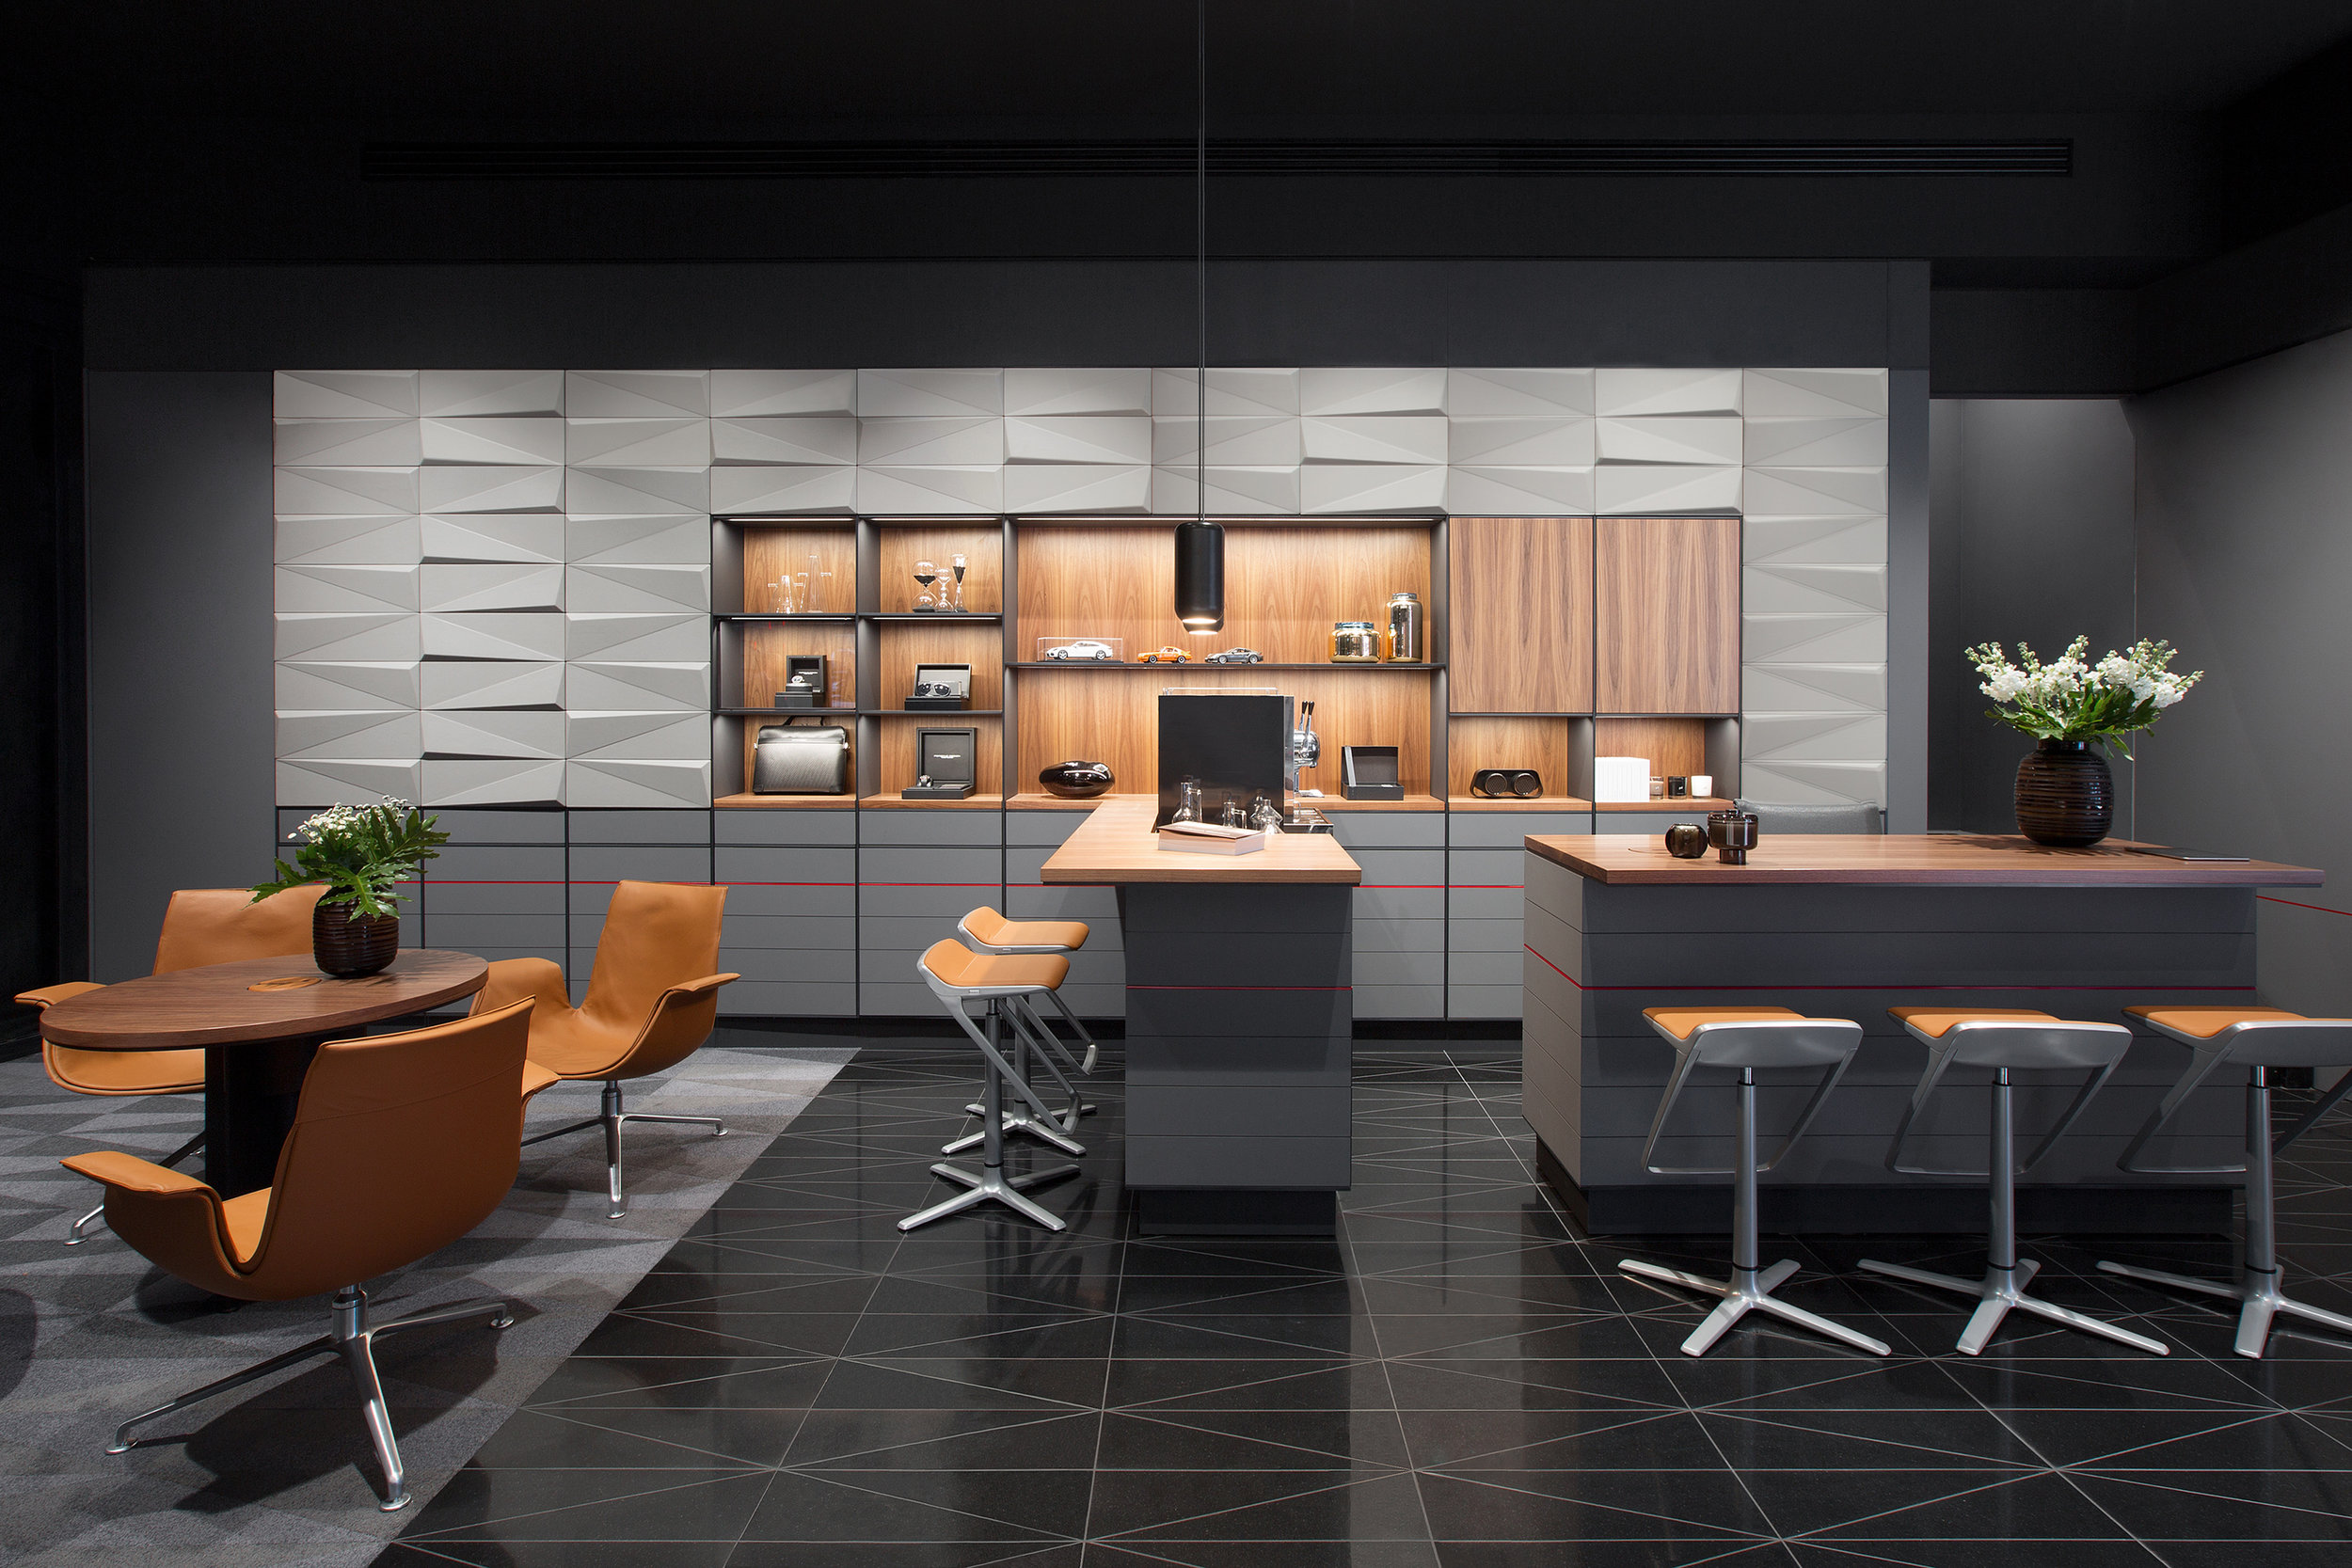 porsche-studio_retail-interior-design_coordination-berlin_15.jpg